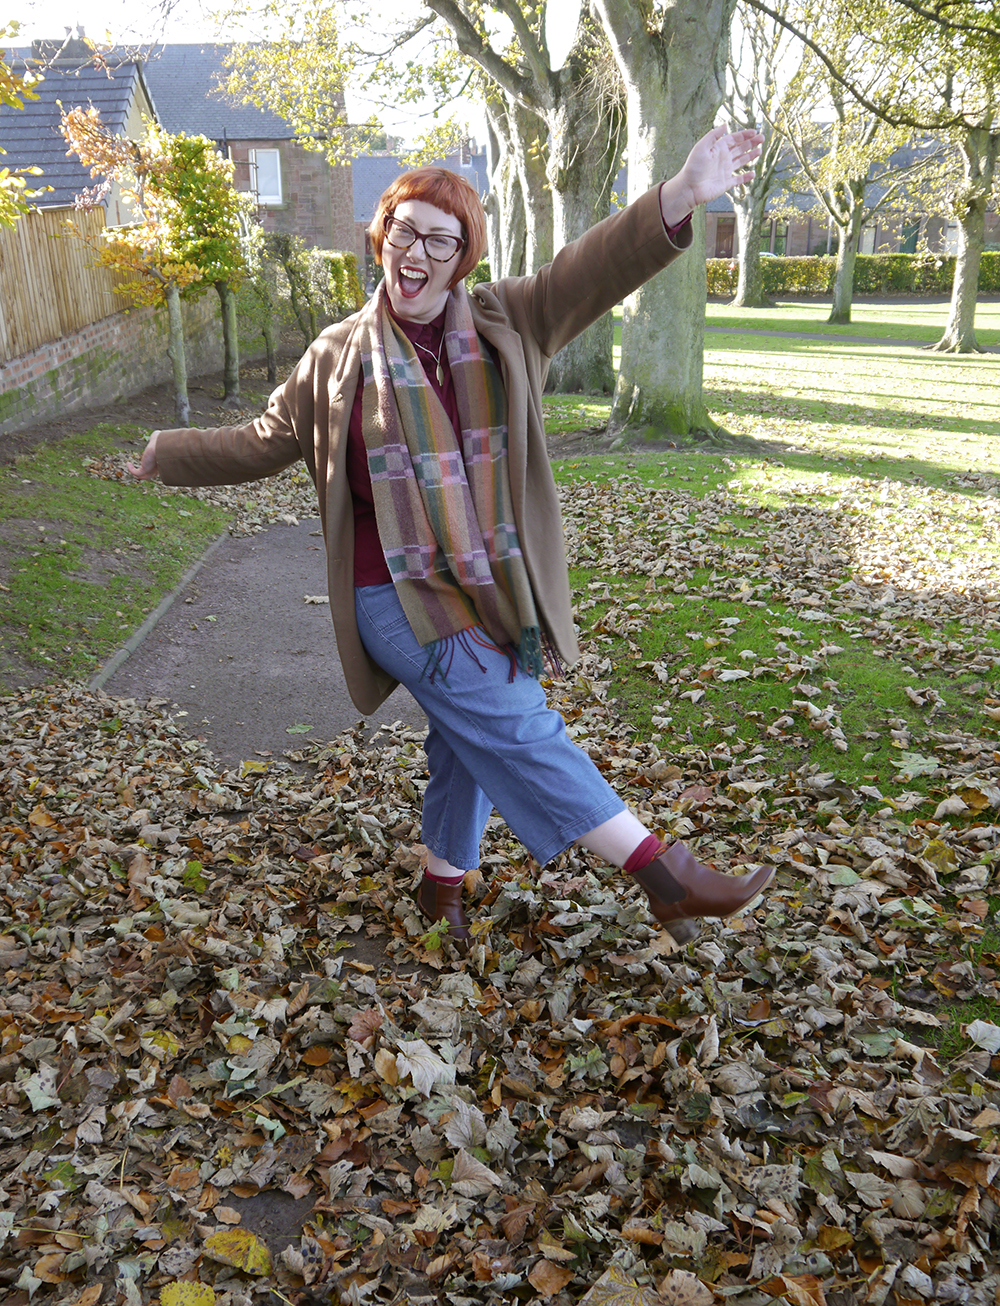 Kickin up leaves in the park while wearing an outfit of autumn colours